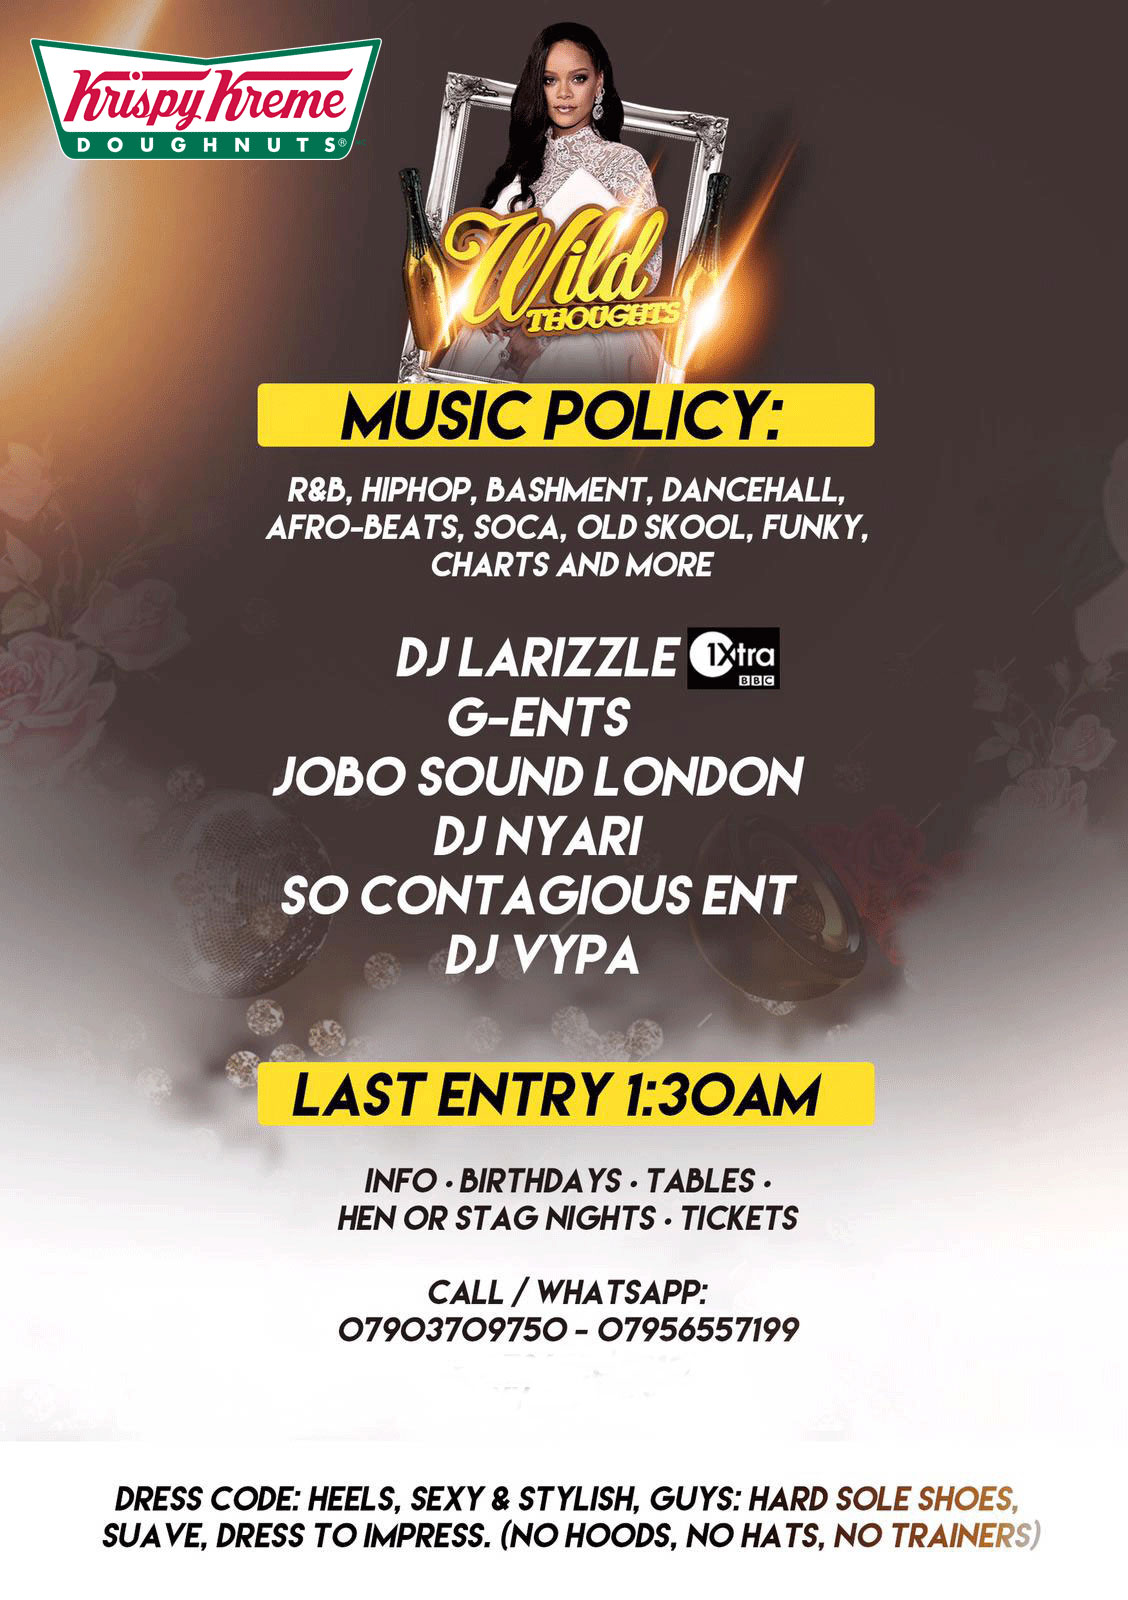 SWAY  Wild Thoughts  Central London  4th May  Sway Bar  £5